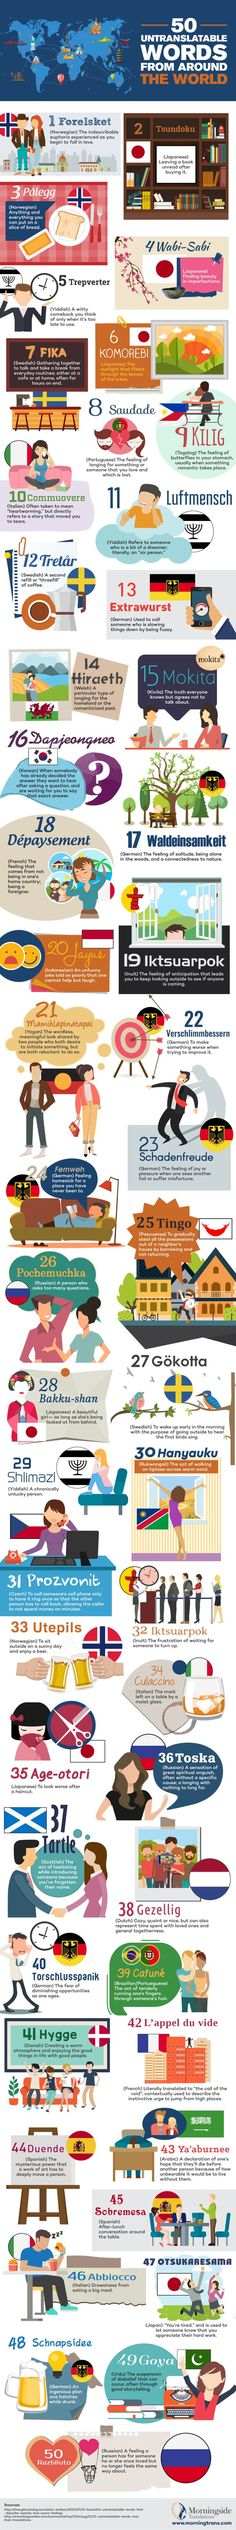 50 Untranslatable Words From Around the World #Infographic #Language